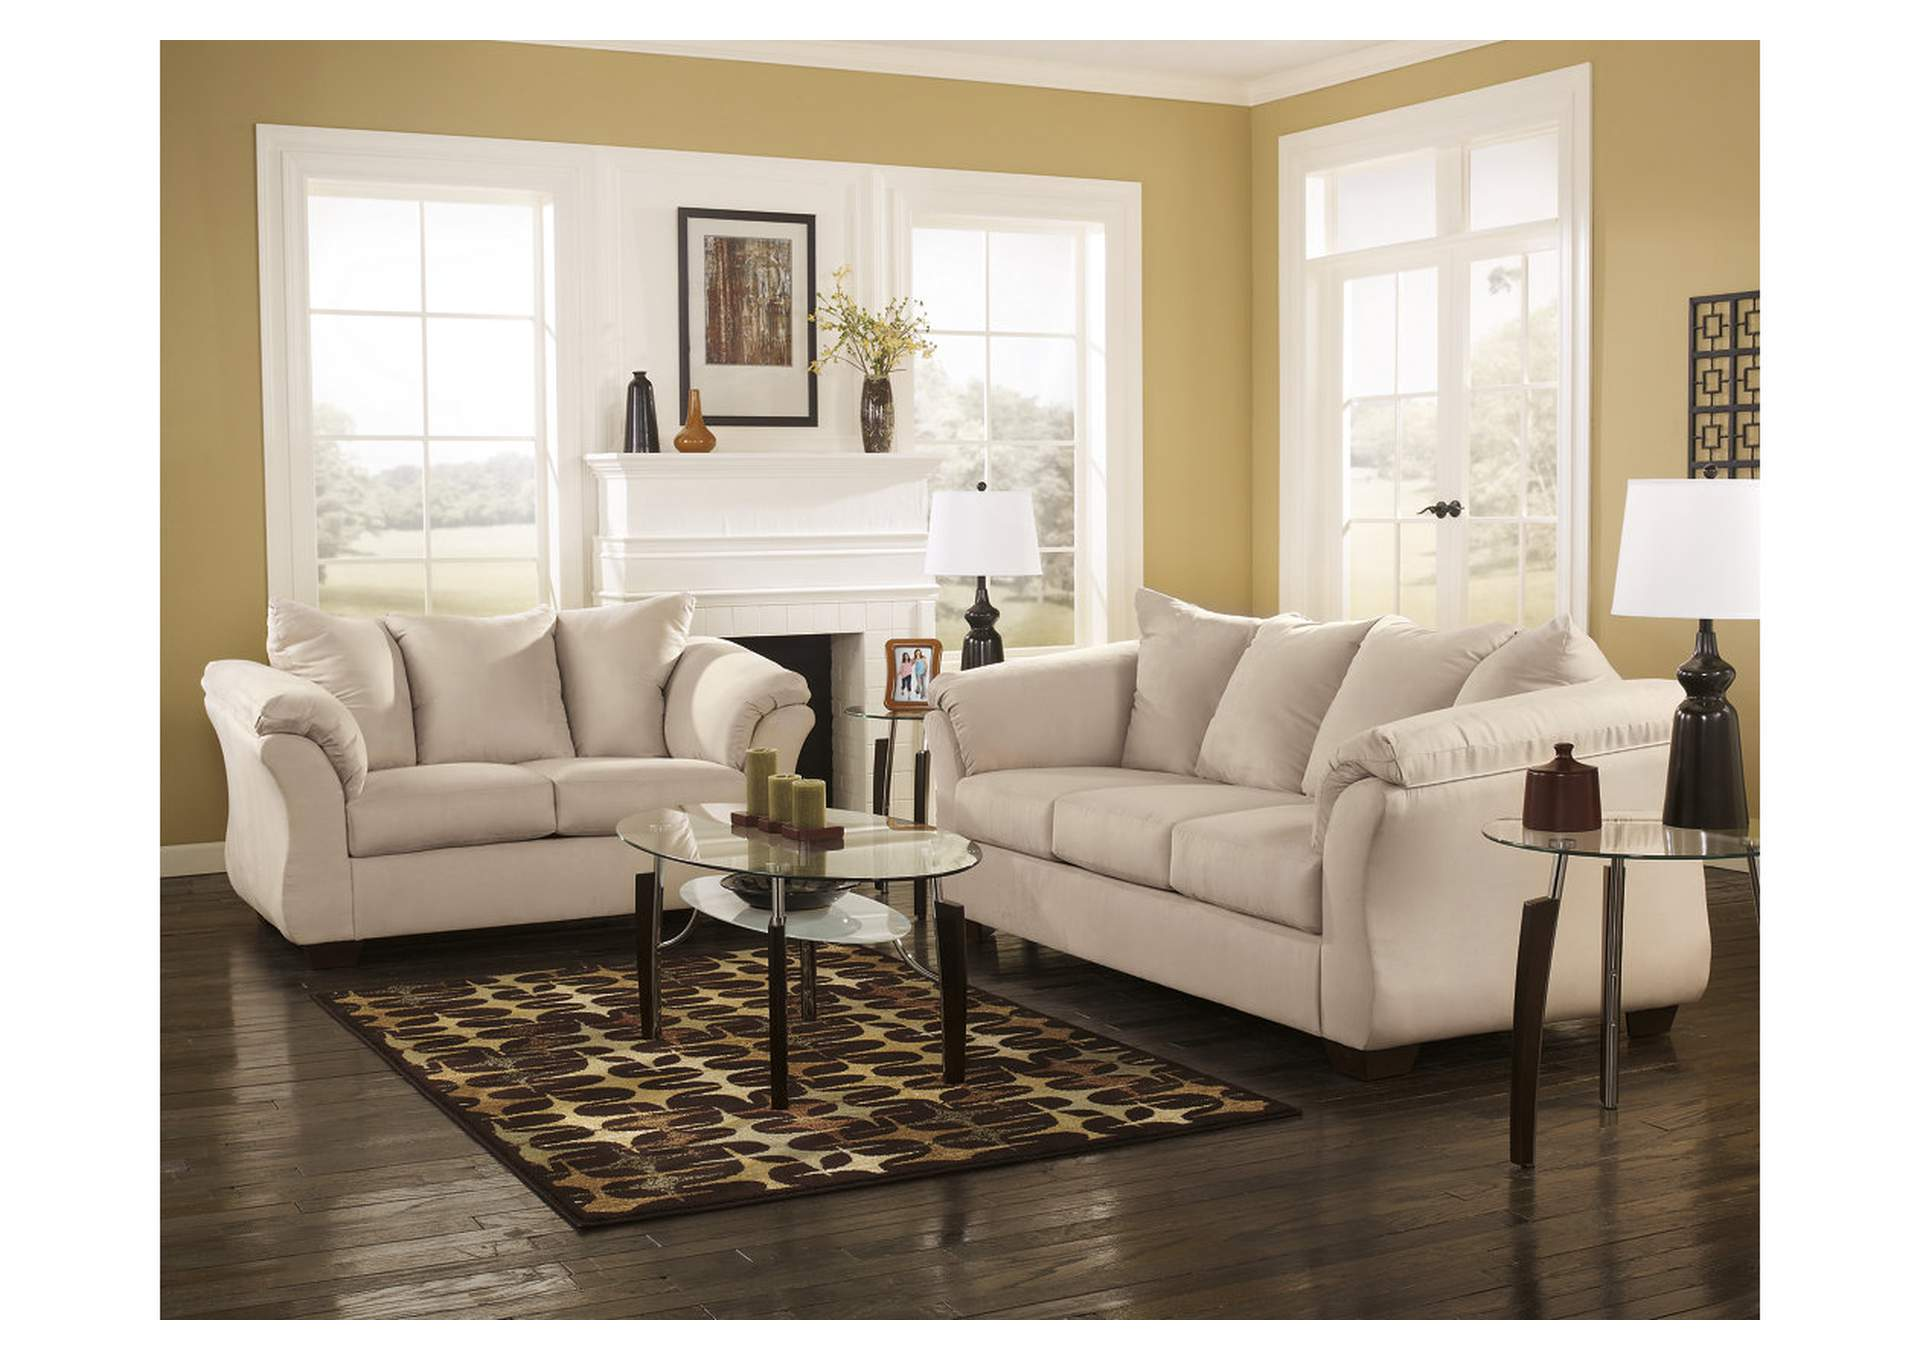 Darcy Stone Sofa and Loveseat 700 x 489